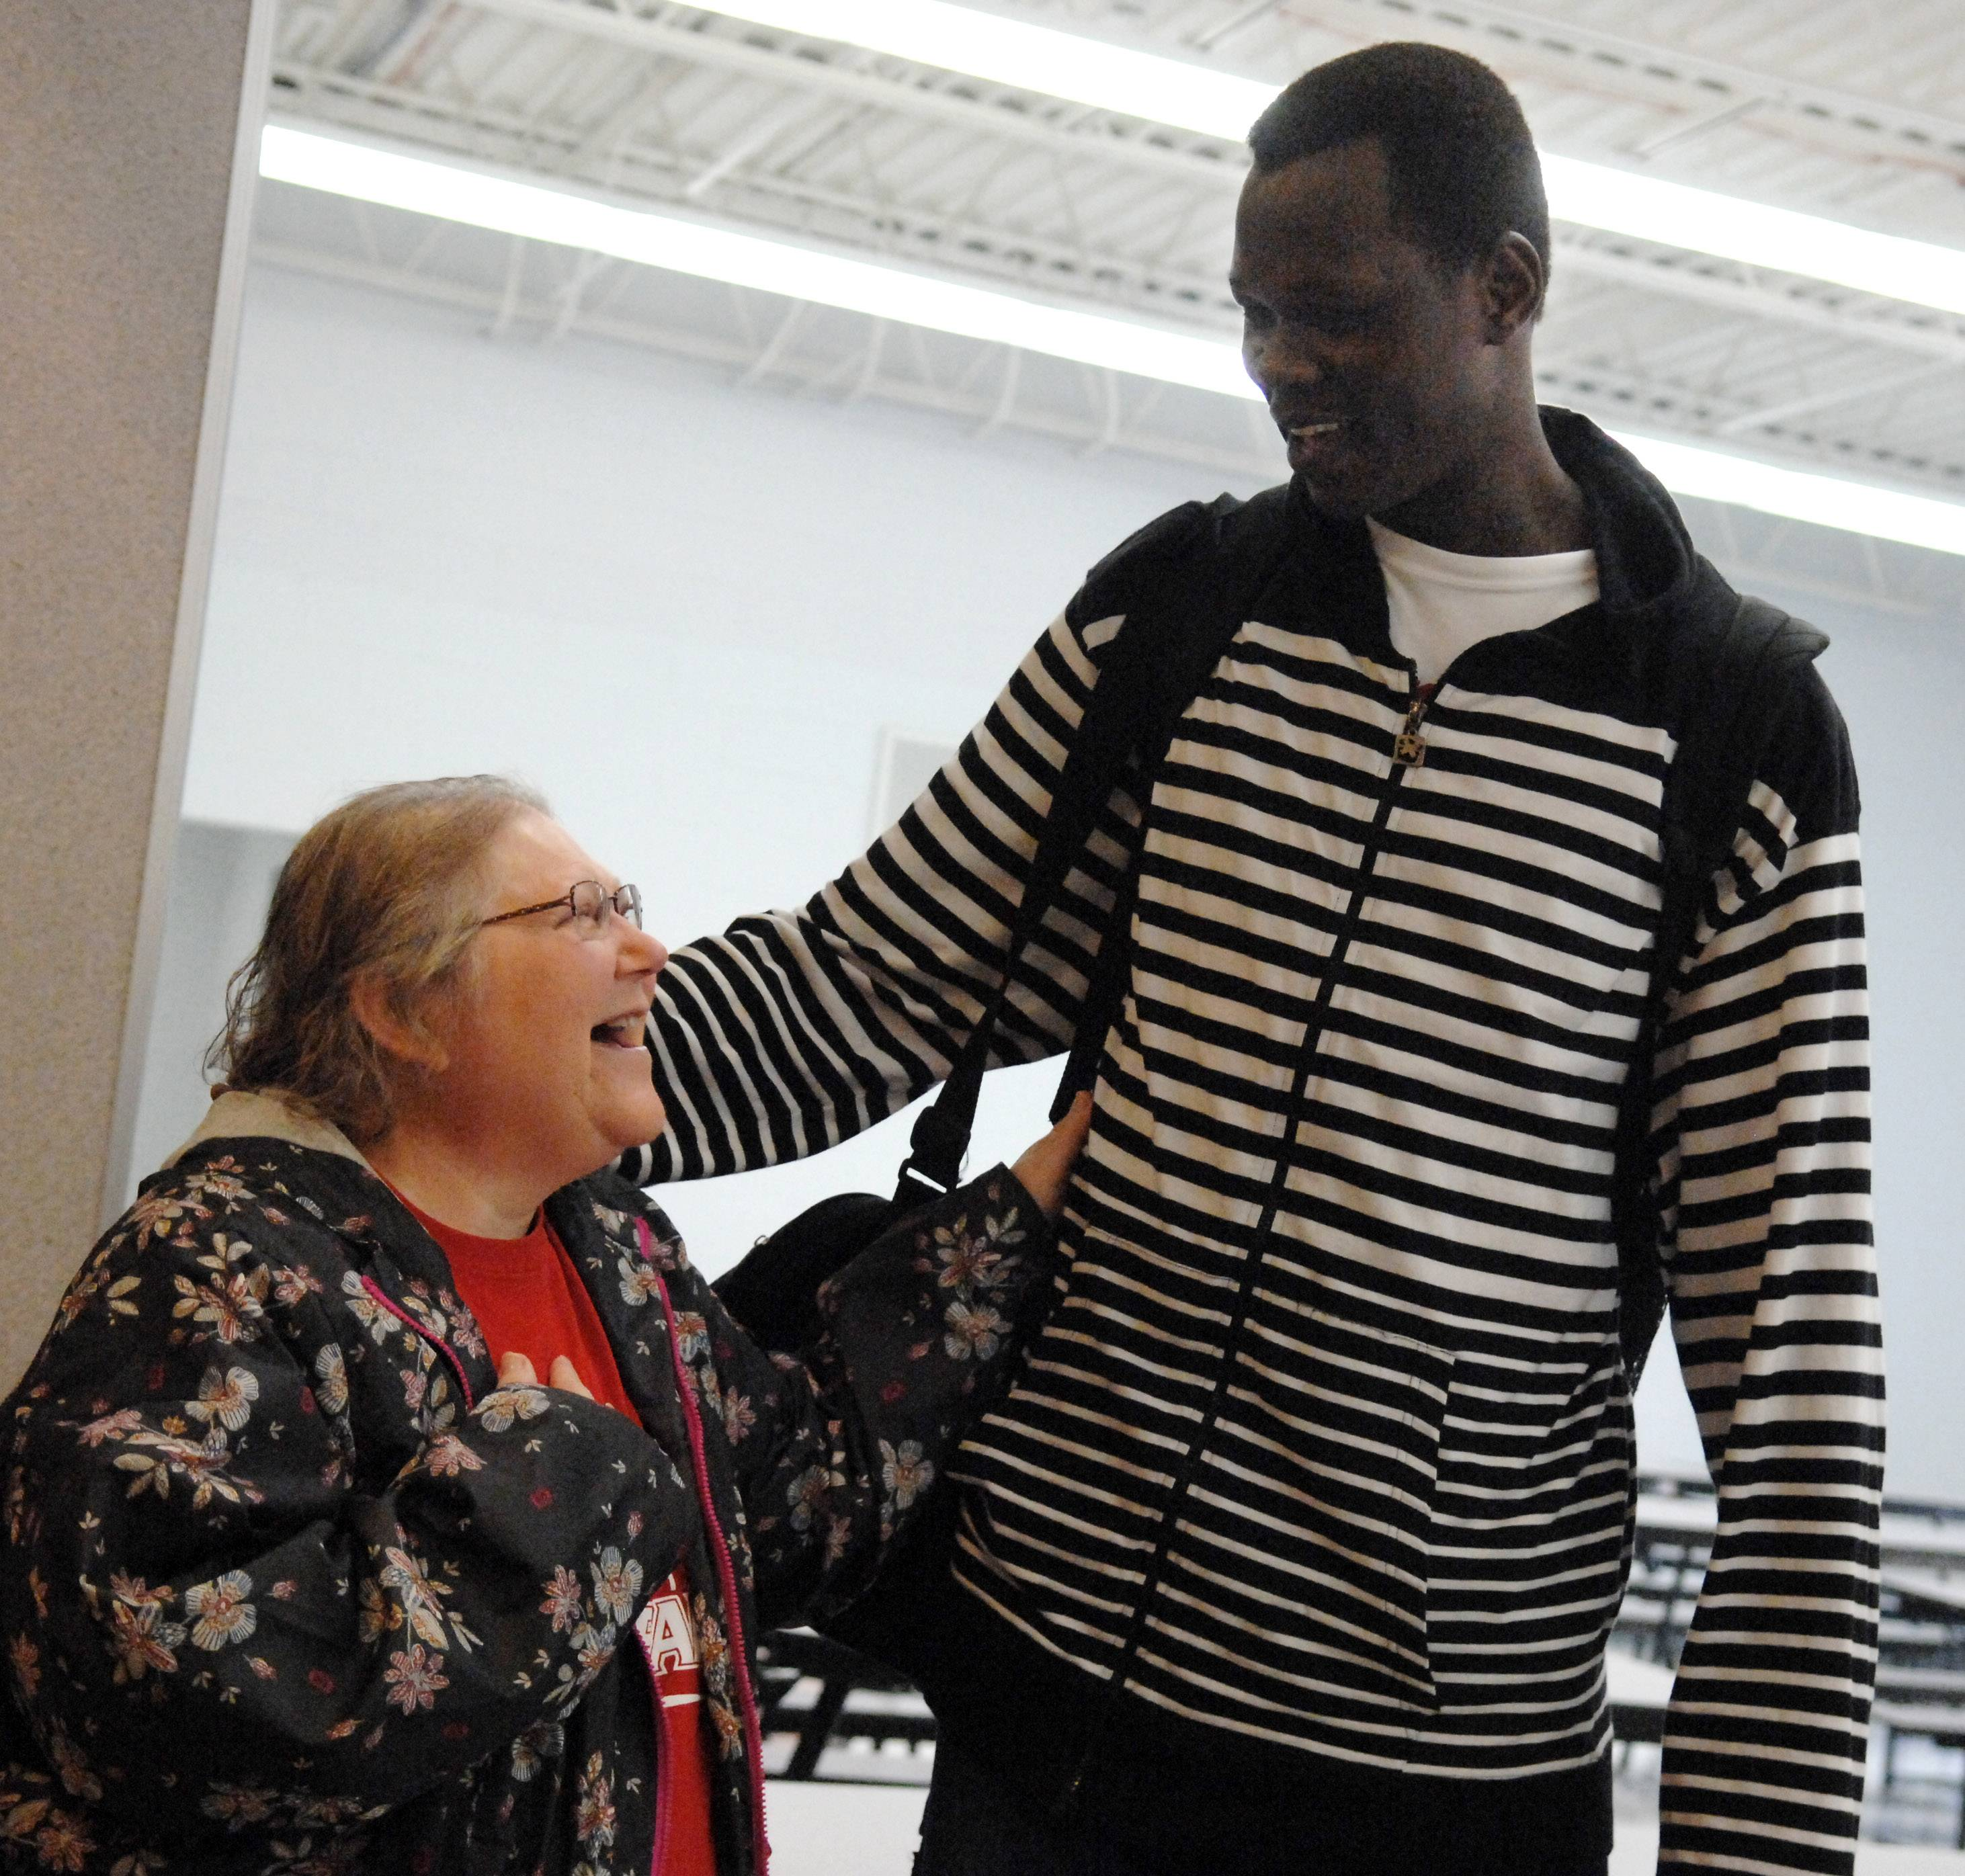 Basketball player Akim Nyang gets a hug from athletic secretary Mary Beth Hake following a ceremony honoring the basketball team Friday at Mooseheart. The ceremony also honored other athletes, including the school's first state qualifying wrestler and a cross-country runner who finished fourth at state.